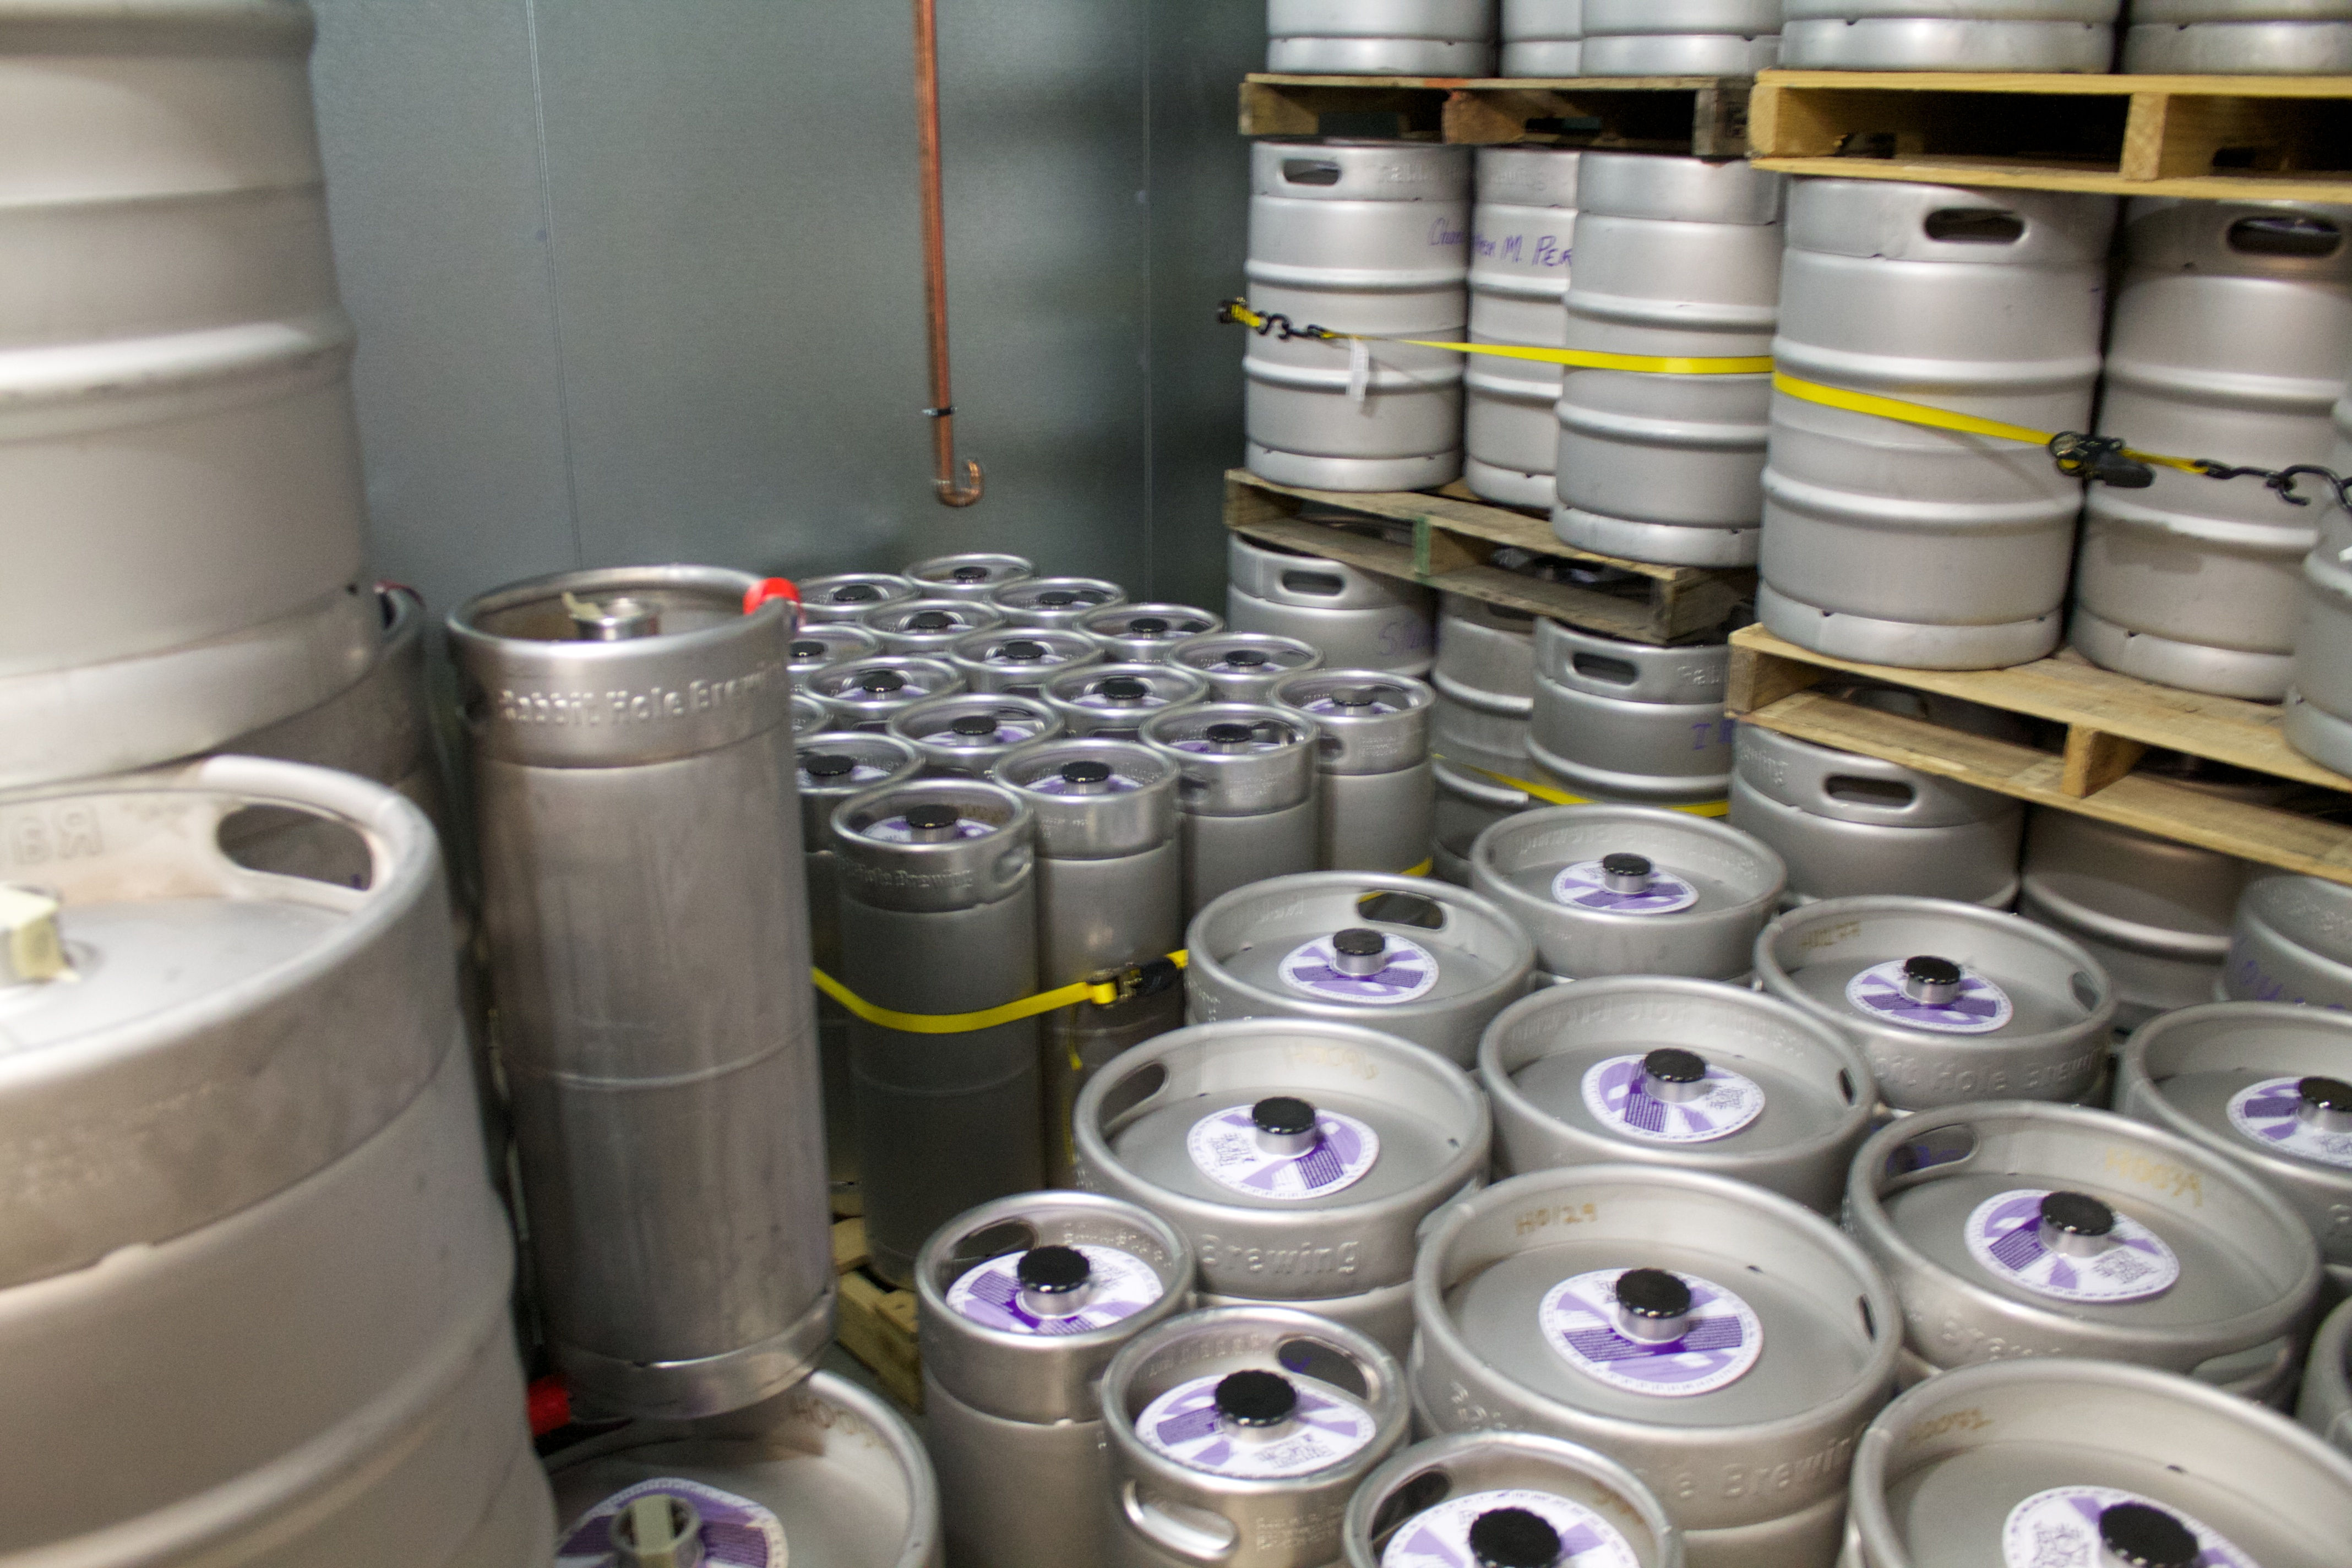 A refrigerated room full of kegs at Rabbit Hole Brewing in Justin,Texas.